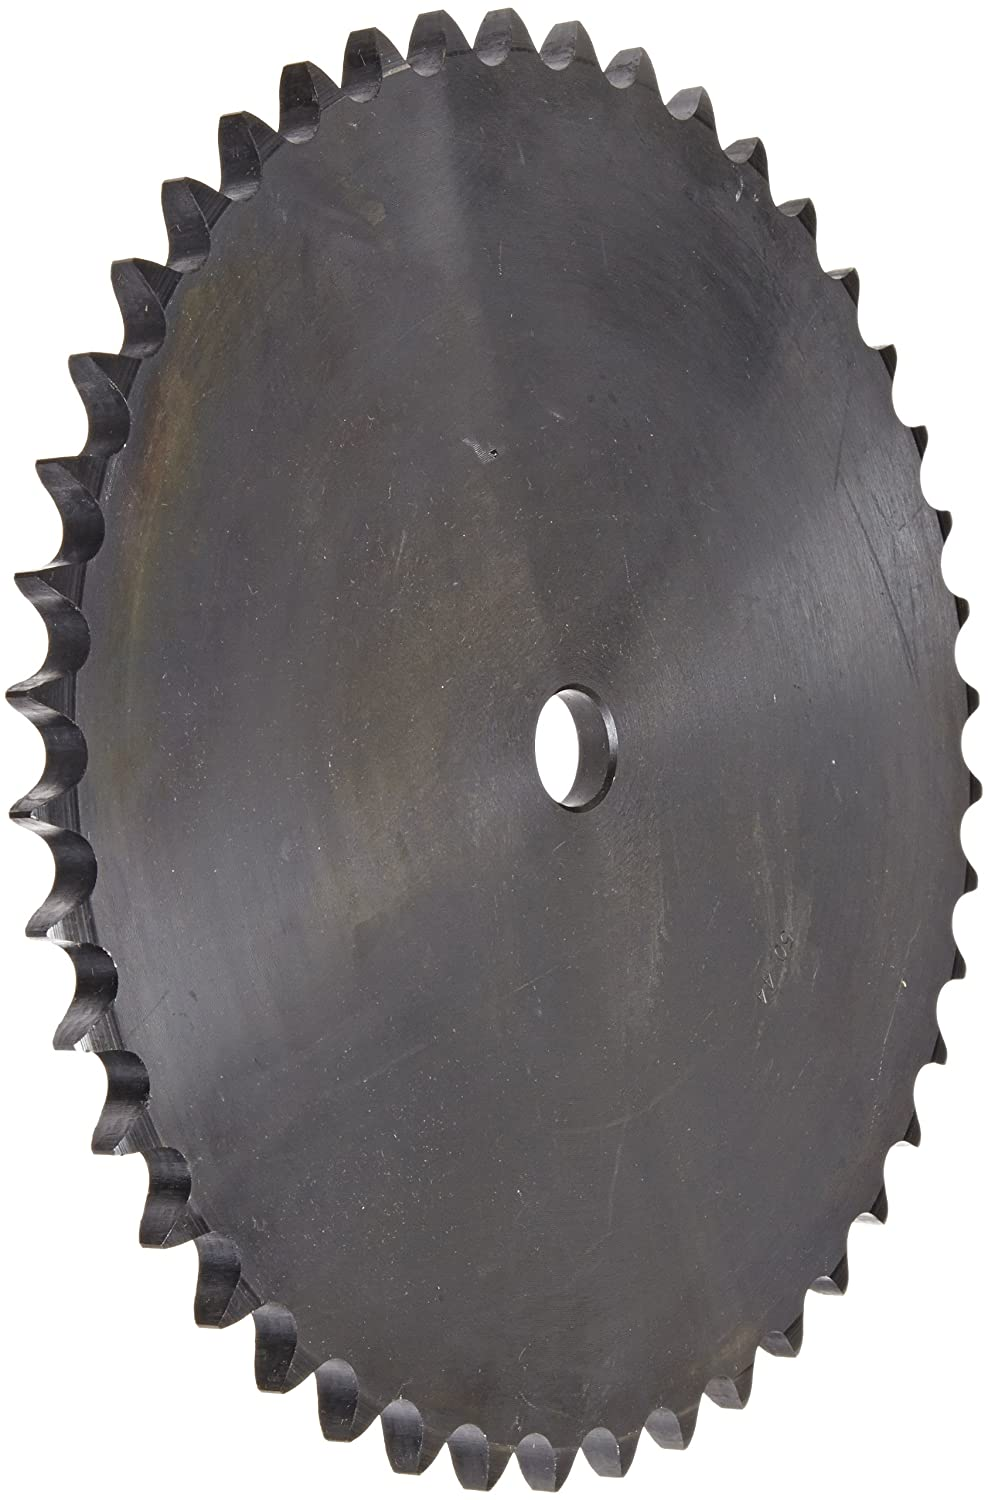 44 Teeth Type A Hub Steel Browning 50A44 Plate Roller Chain Sprocket 3//4 Stocked Bore Single Strand